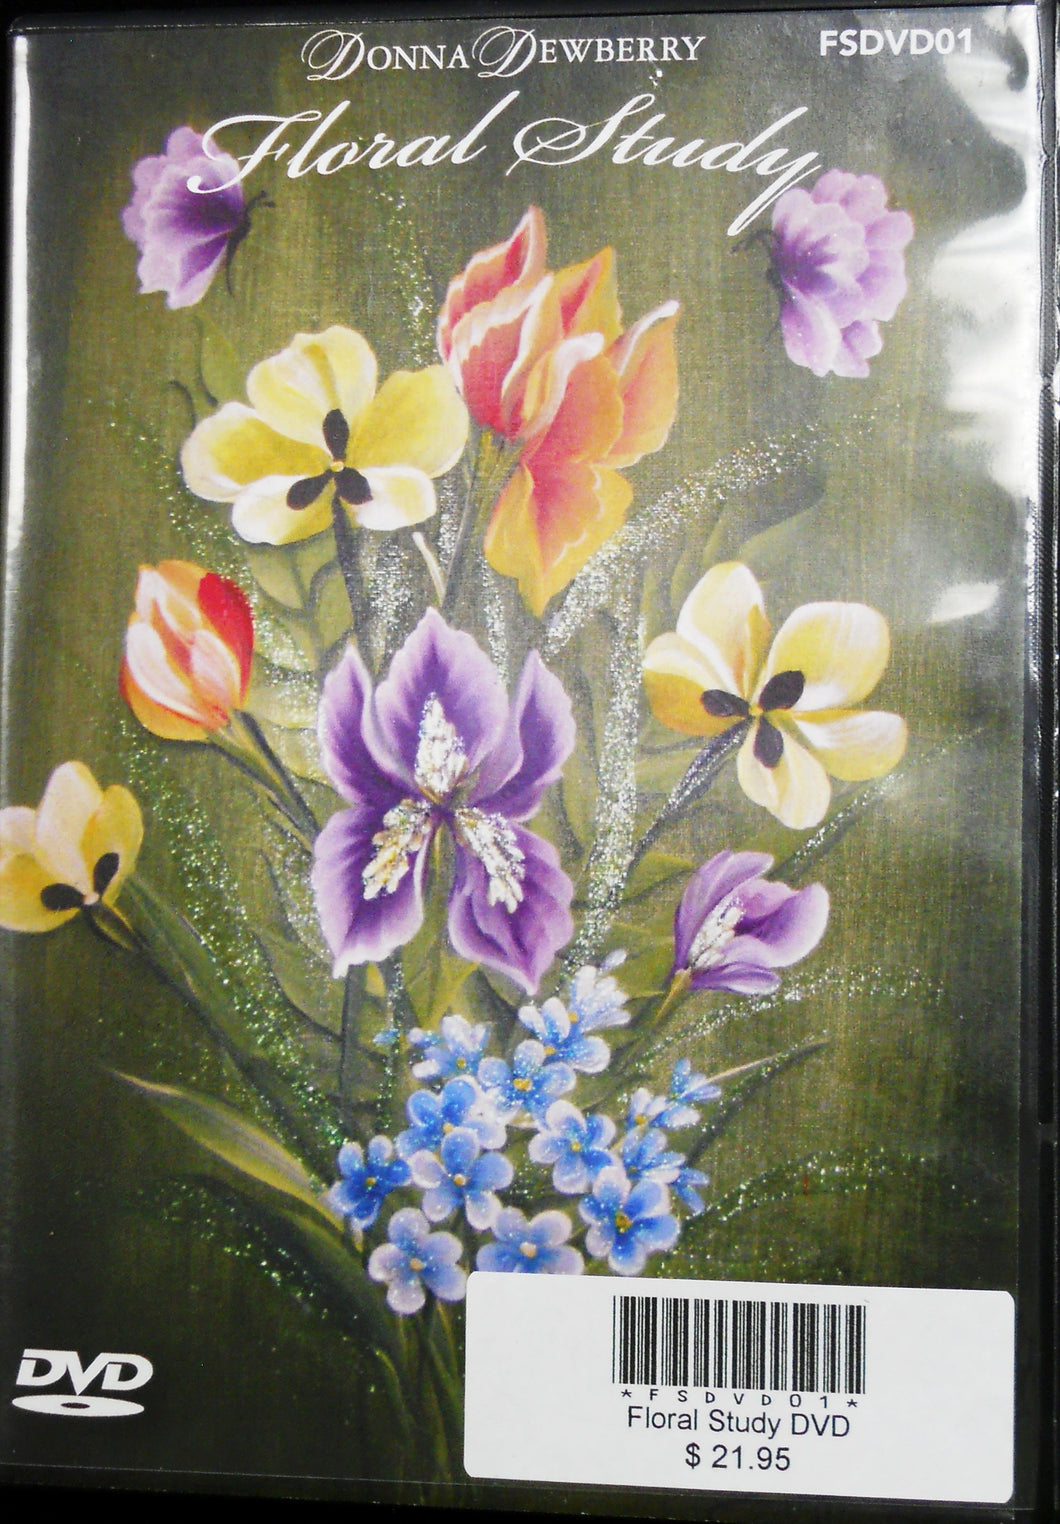 Floral Study DVD